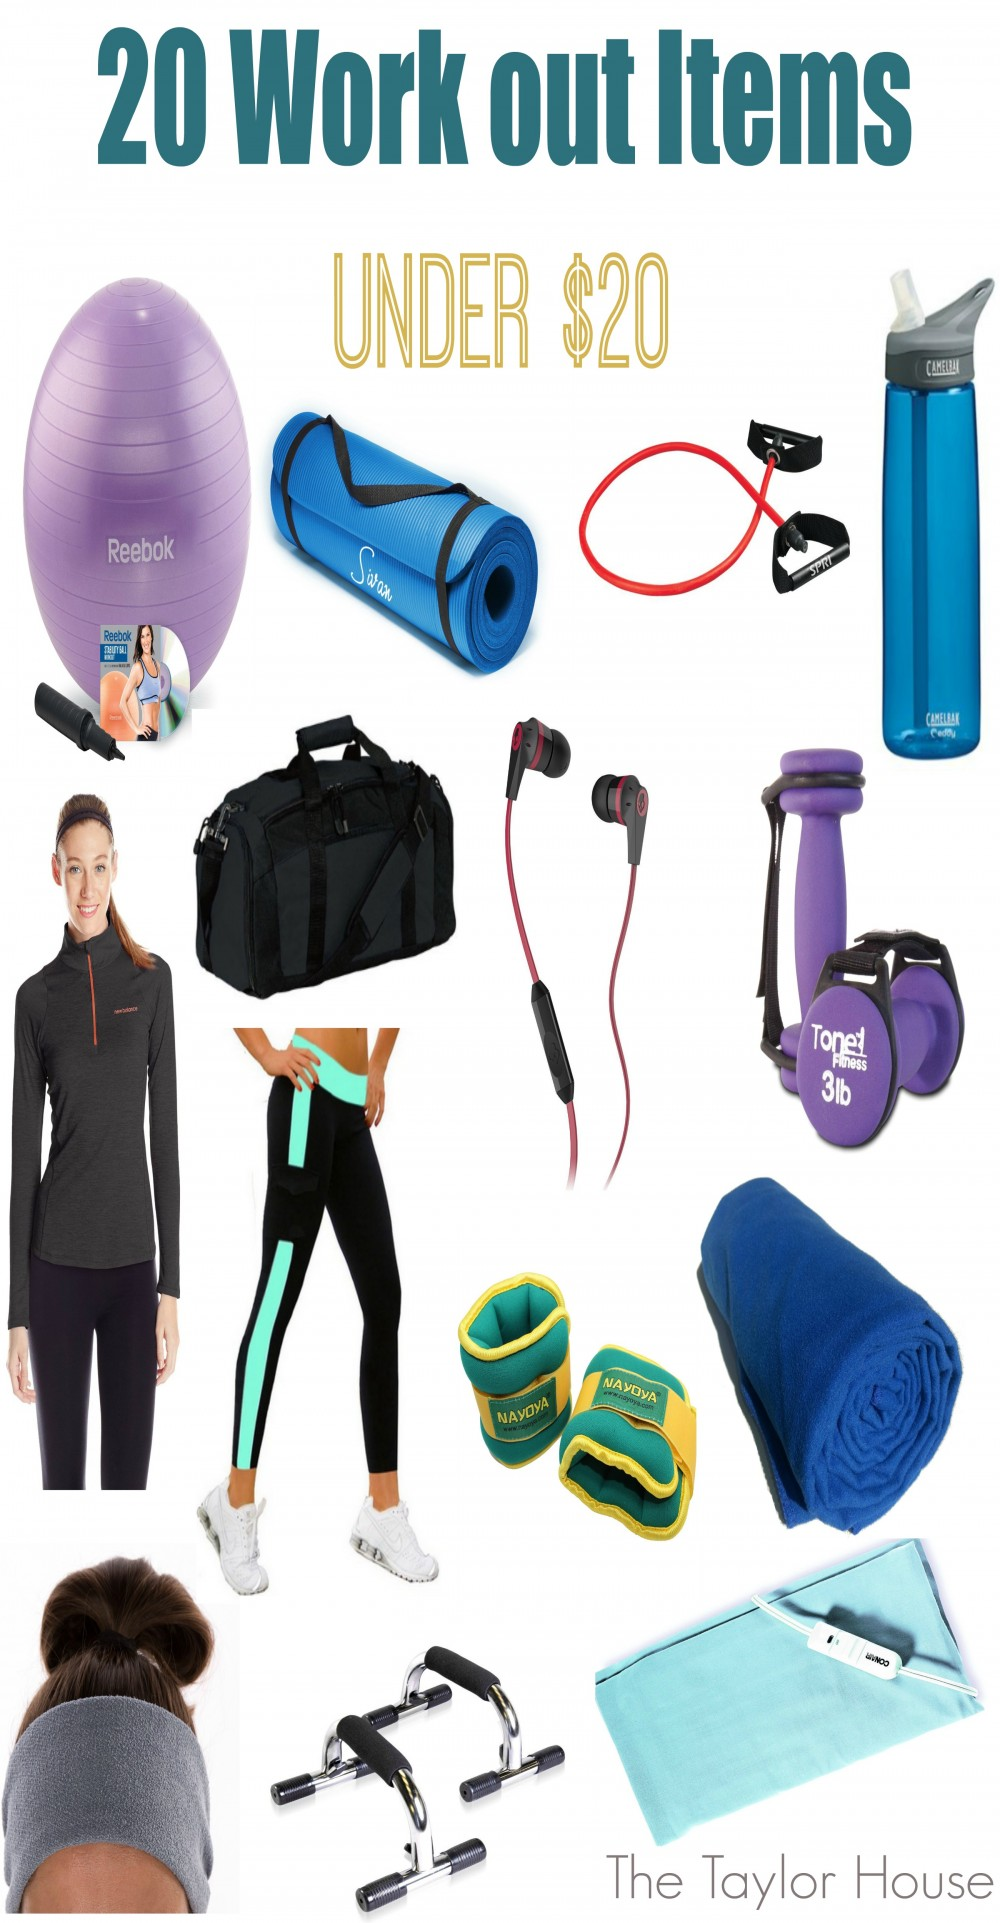 20 Work Out Items for Under $20 to help Mom get into shape this year!